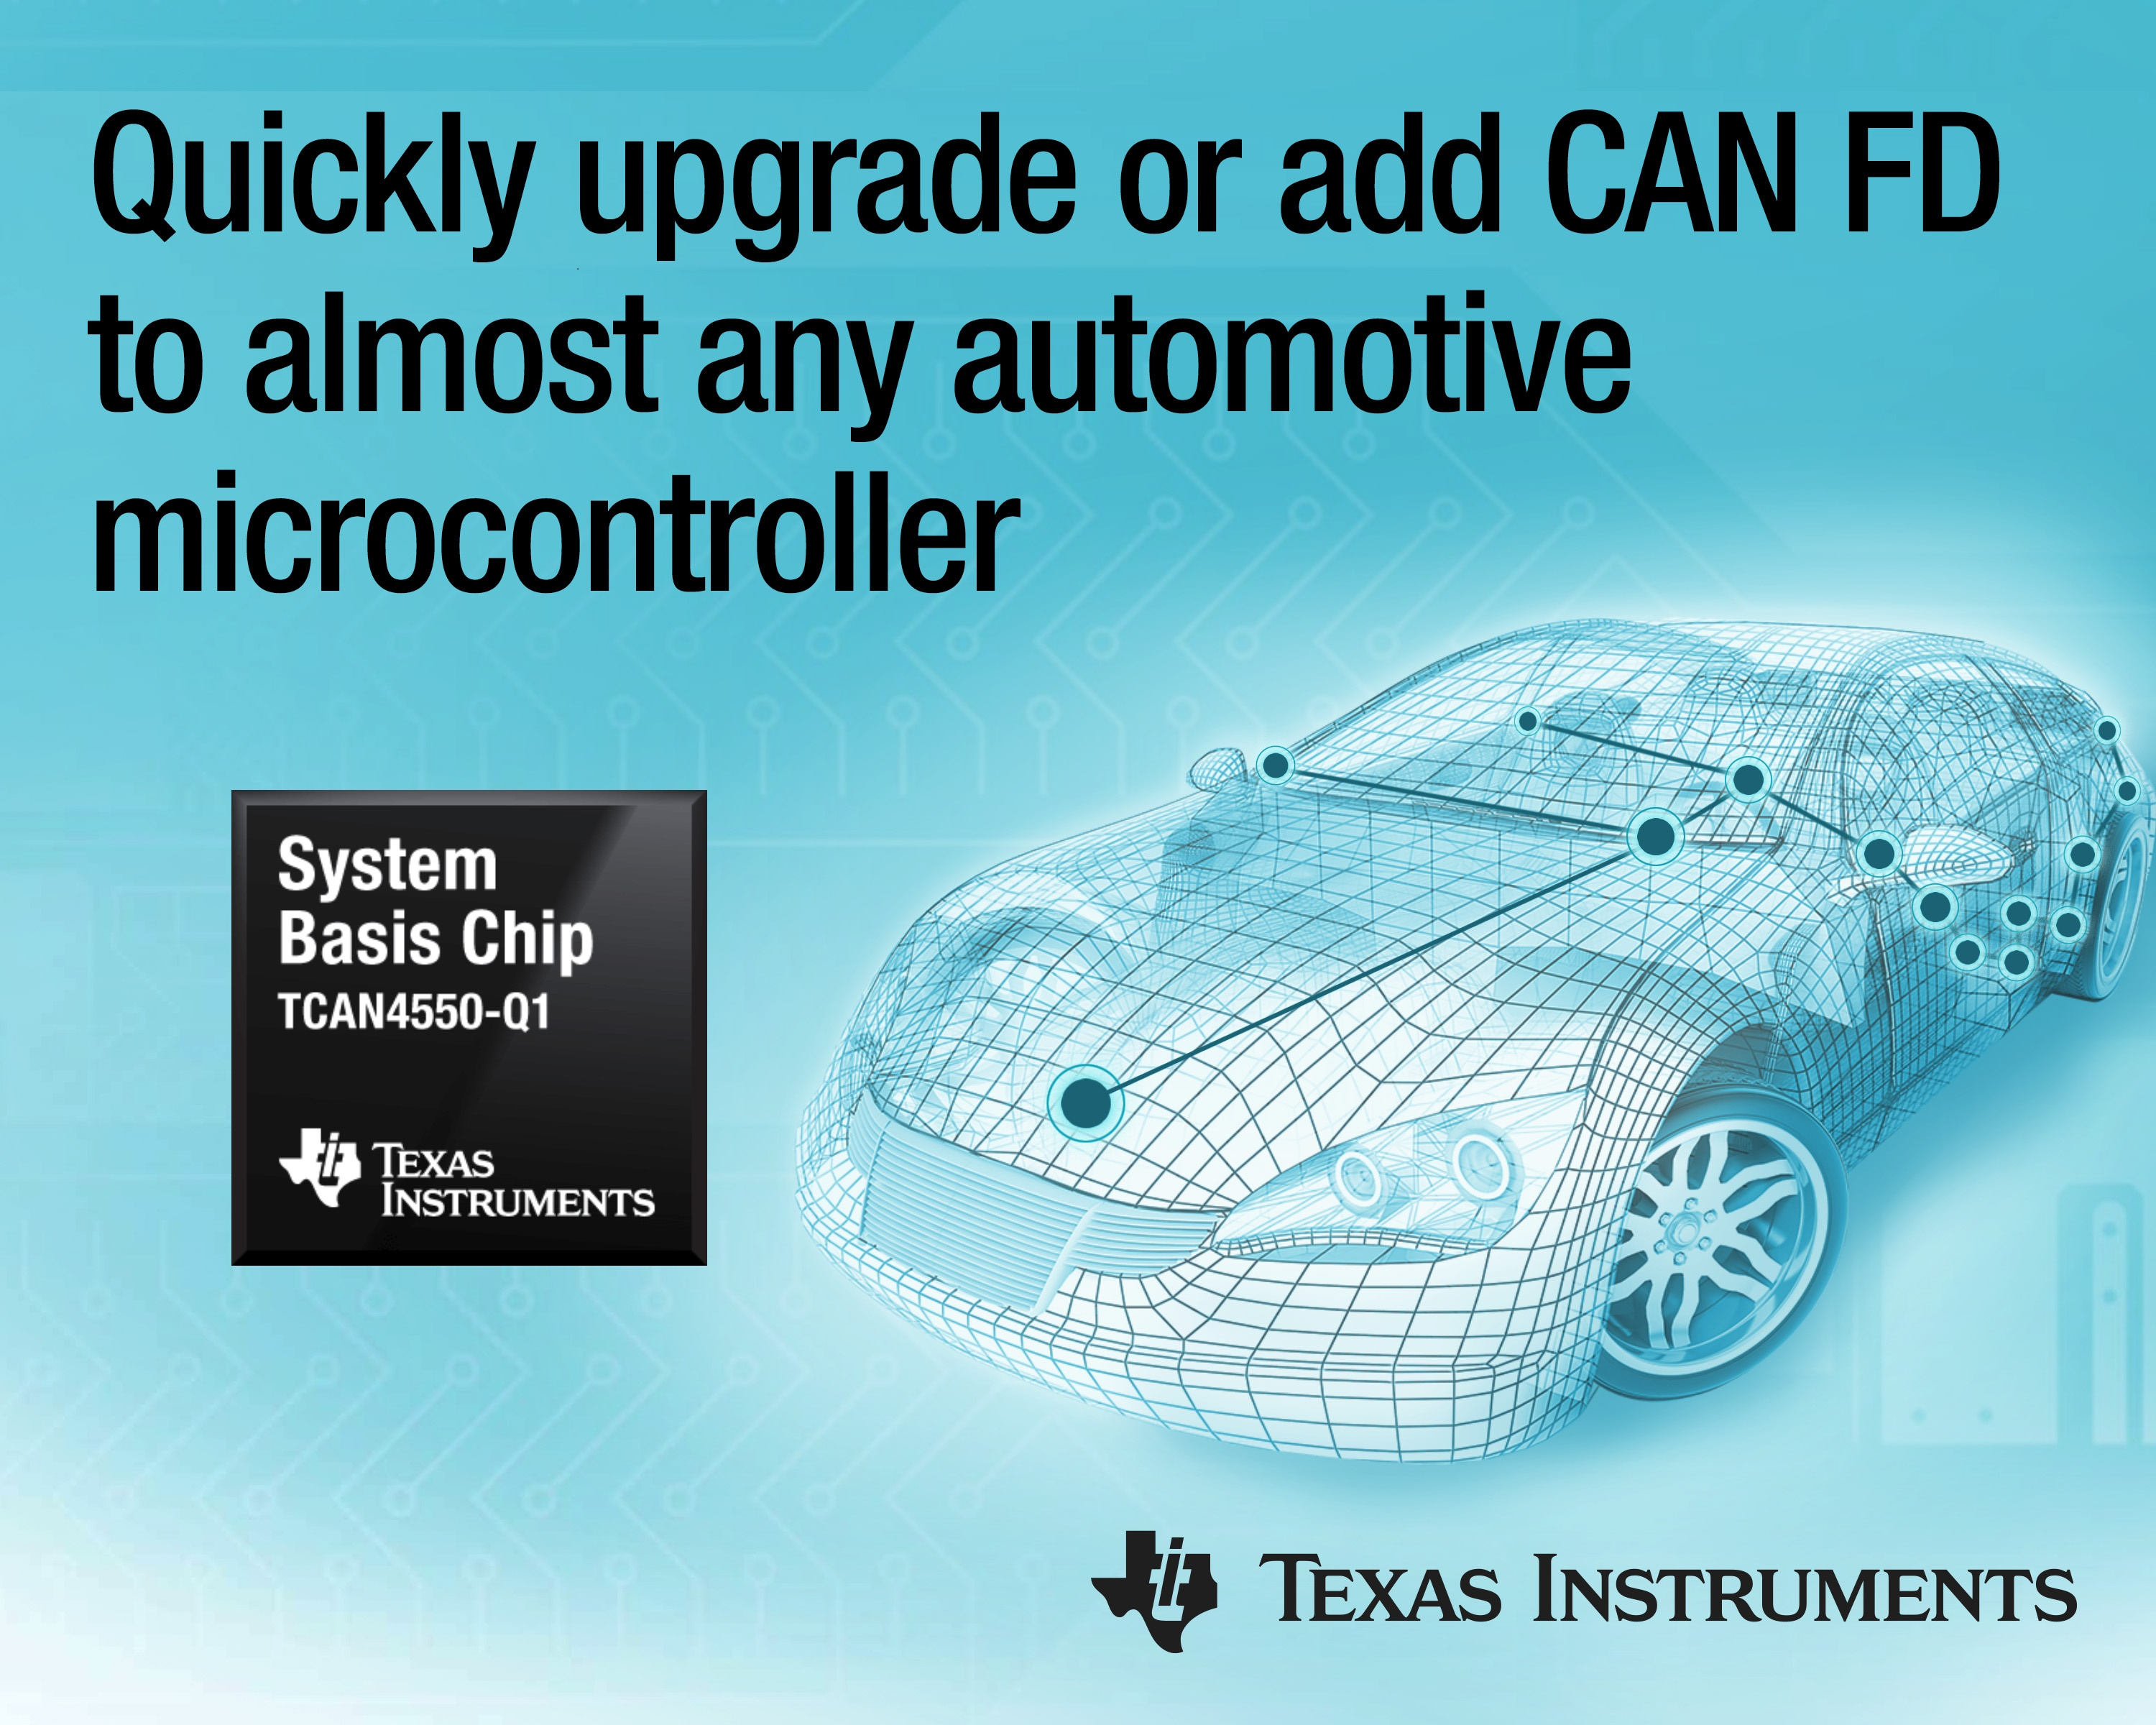 TI Chip integrates transceiver and controller for CAN-FD